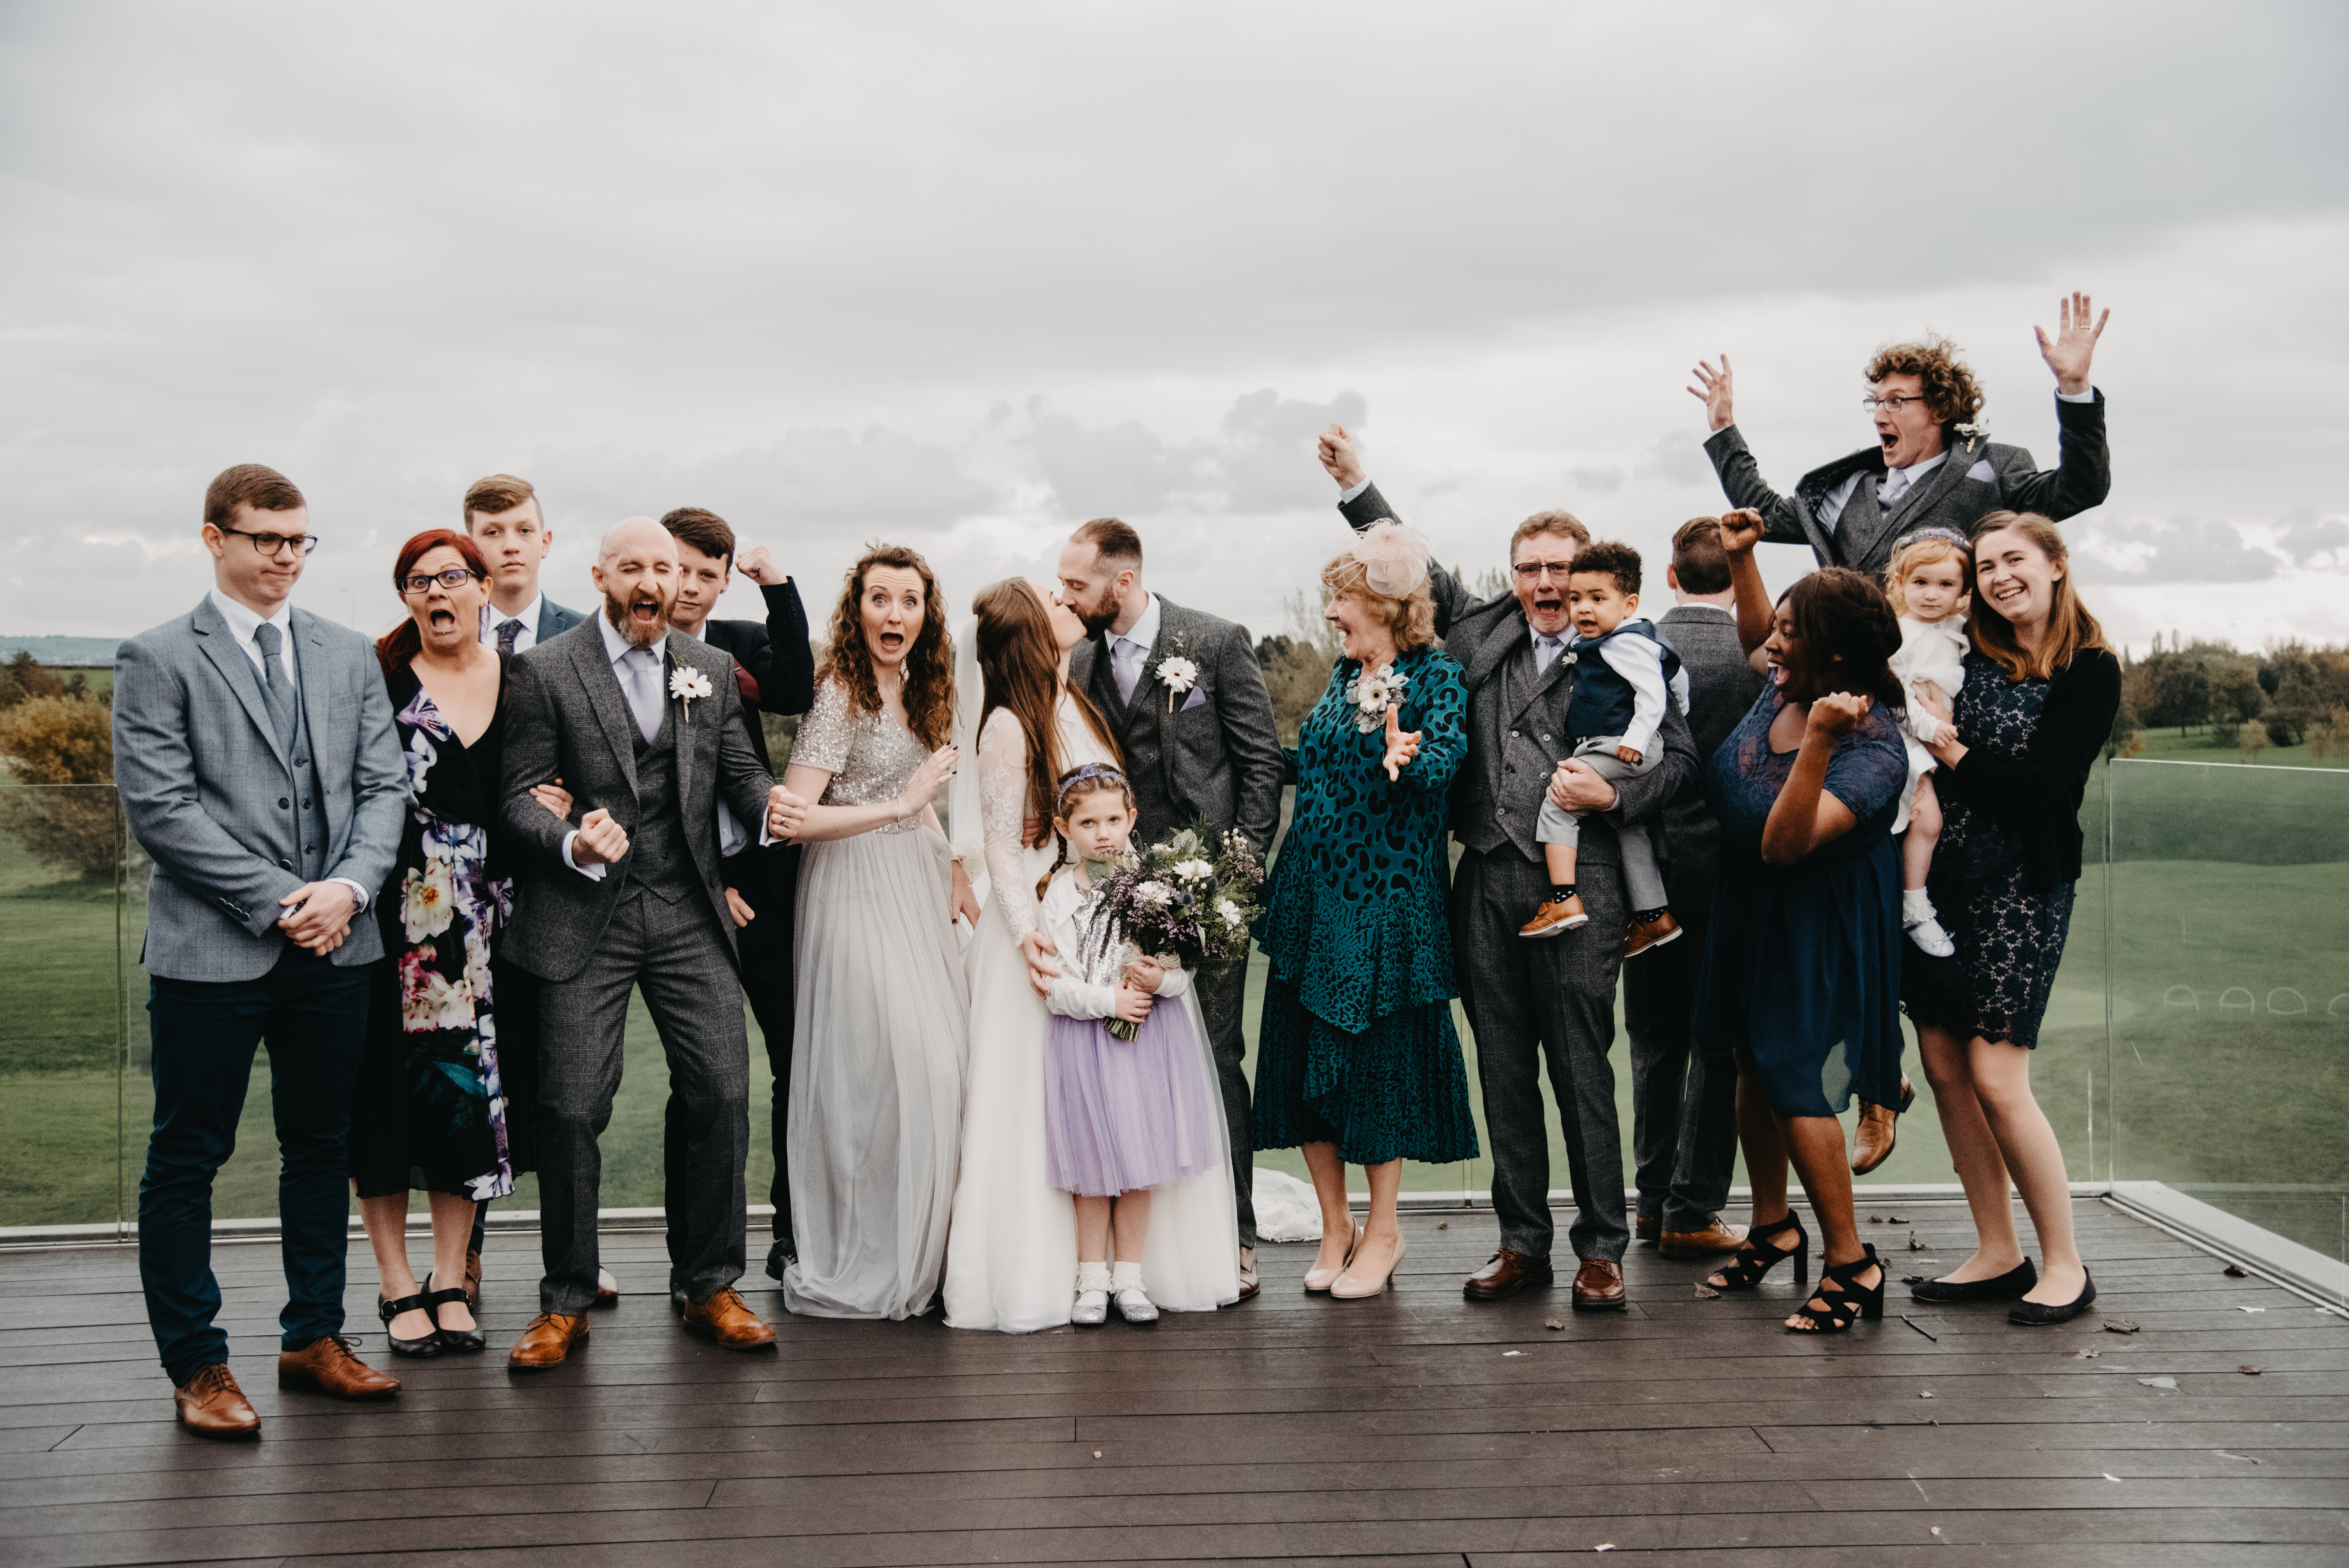 A bride and groom kisses while their family act silly